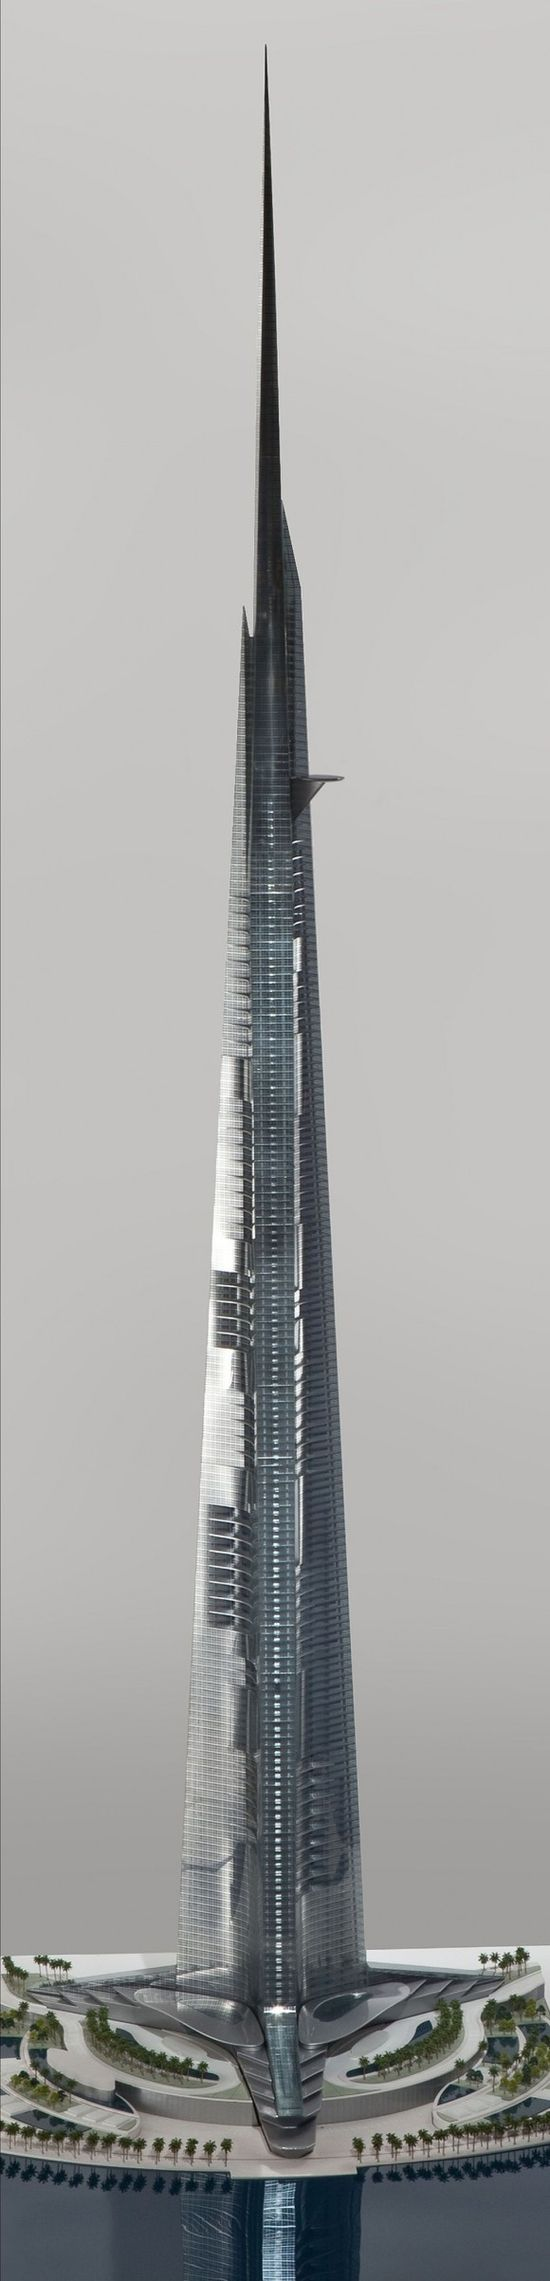 Kingdom Tower will be built in Jeddah, Saudi Arabia and measure  over 1000 meters high